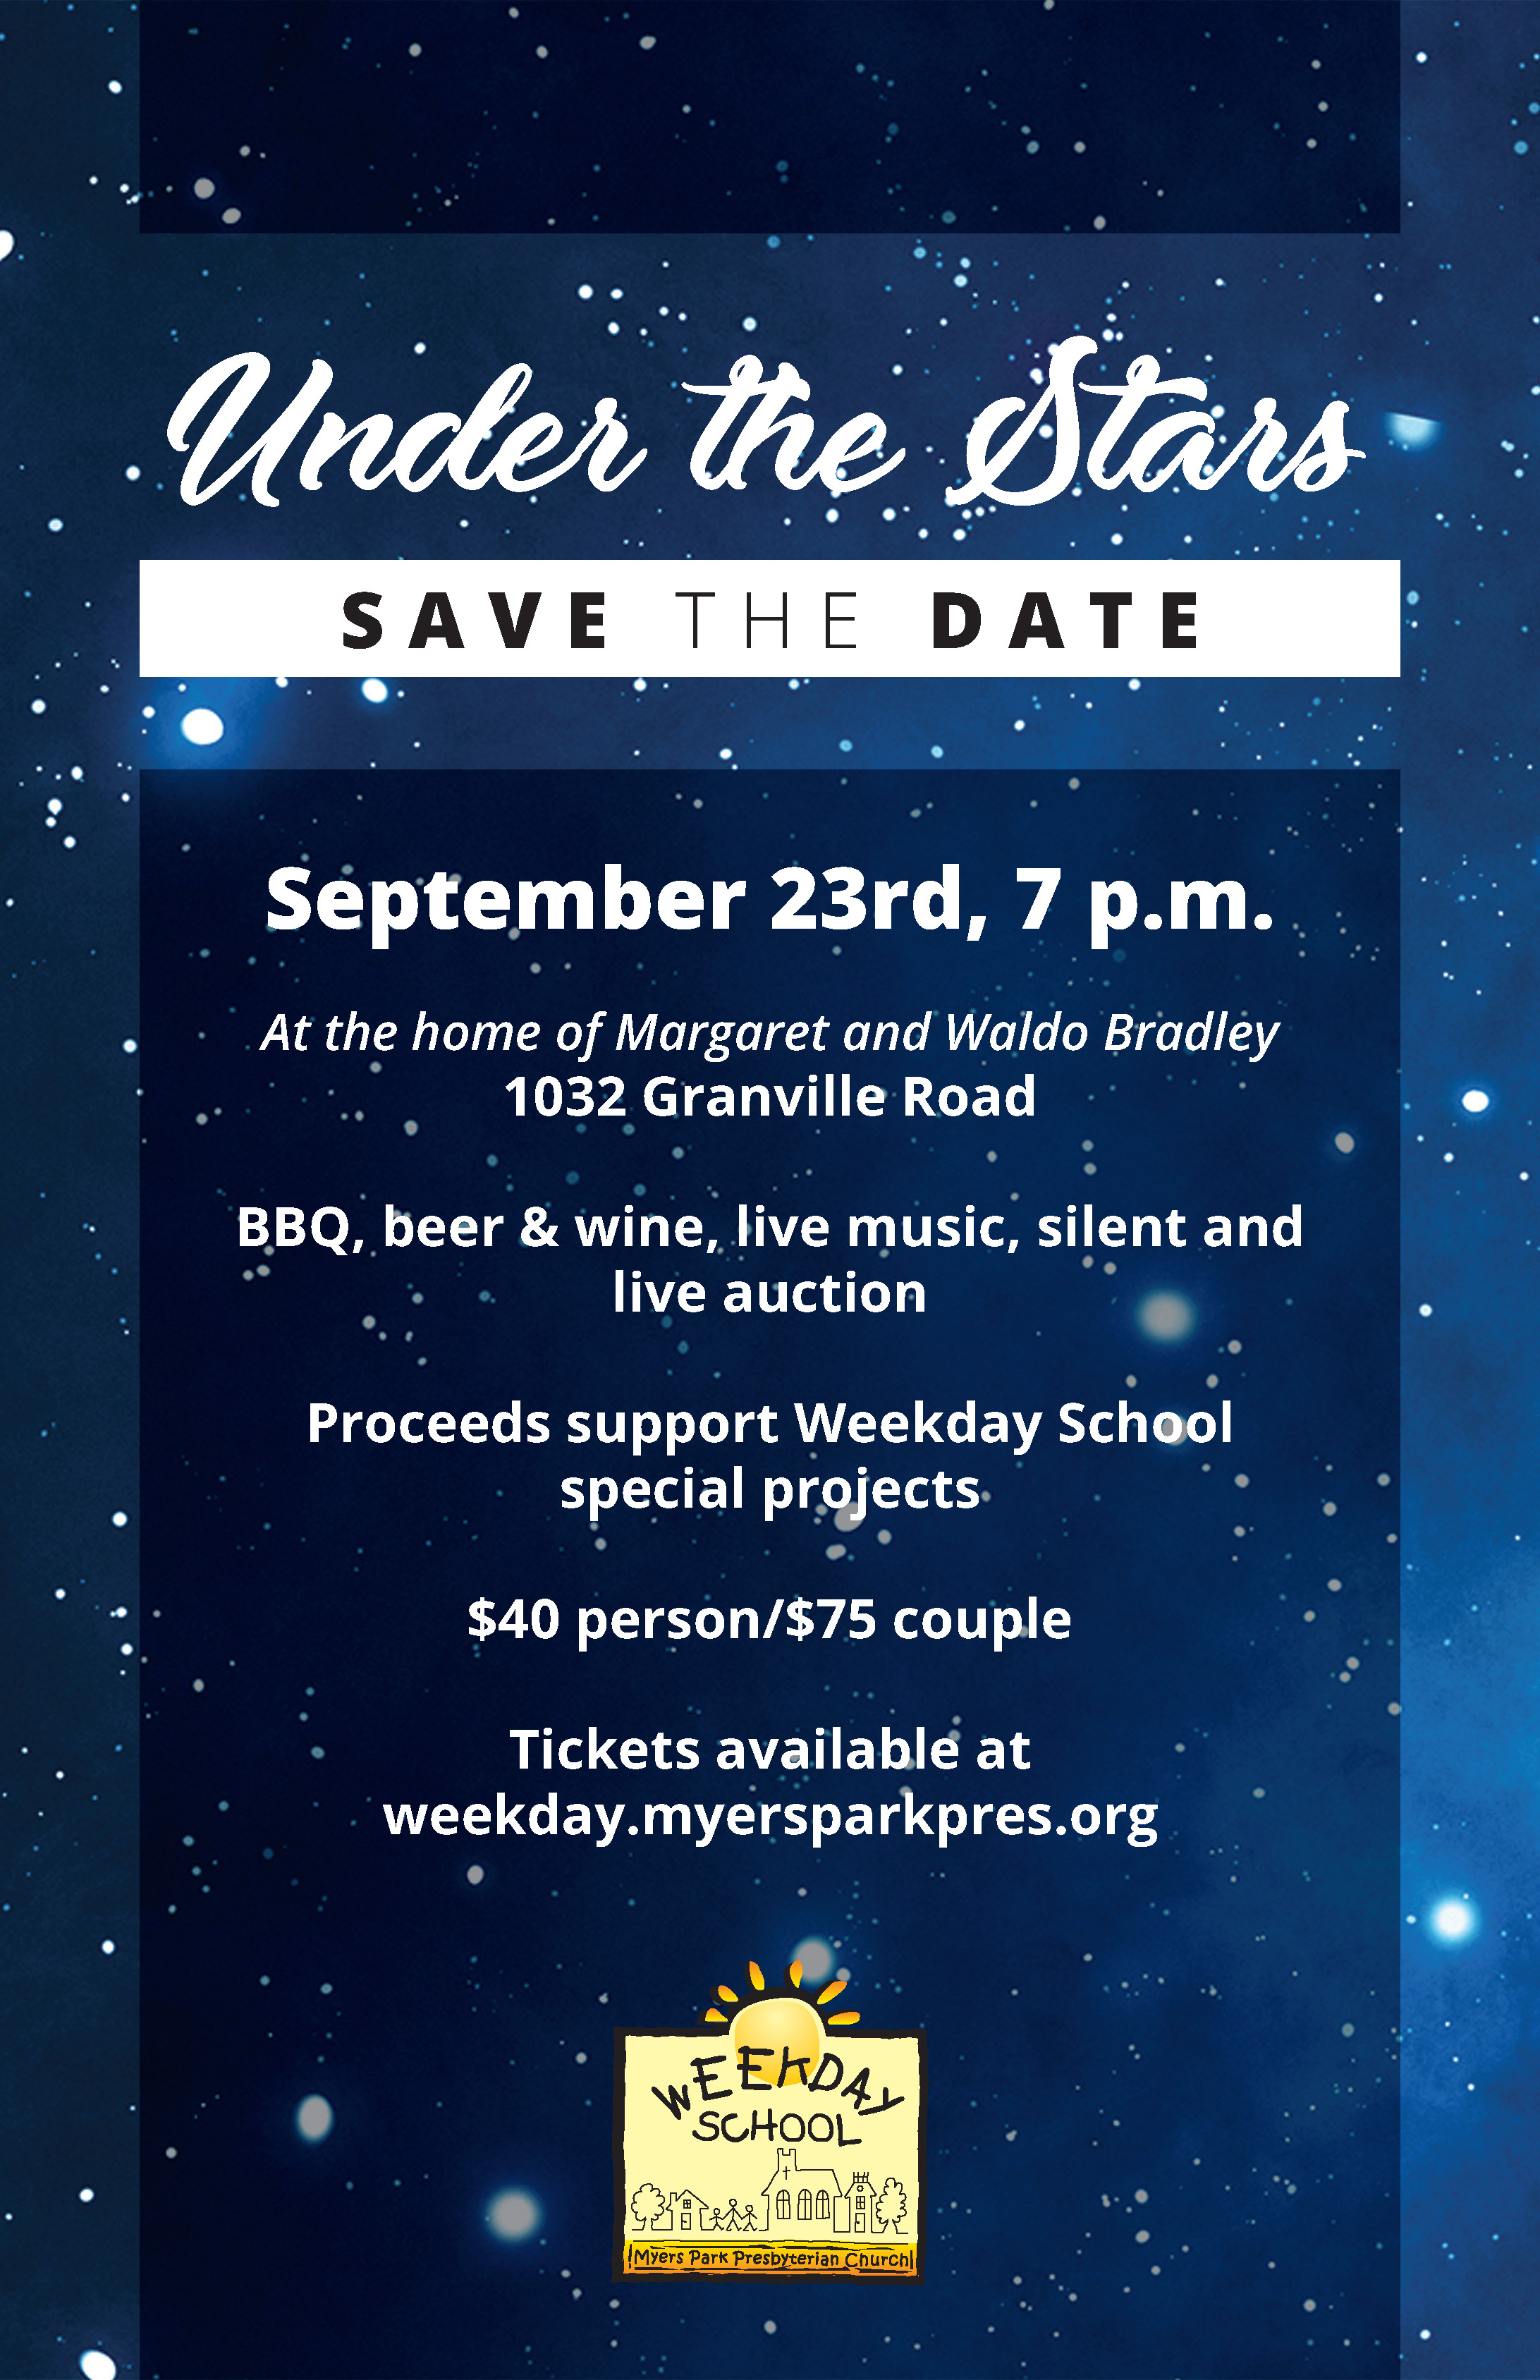 Members Responsive Portal - Weekday School Under the Stars Event 2017